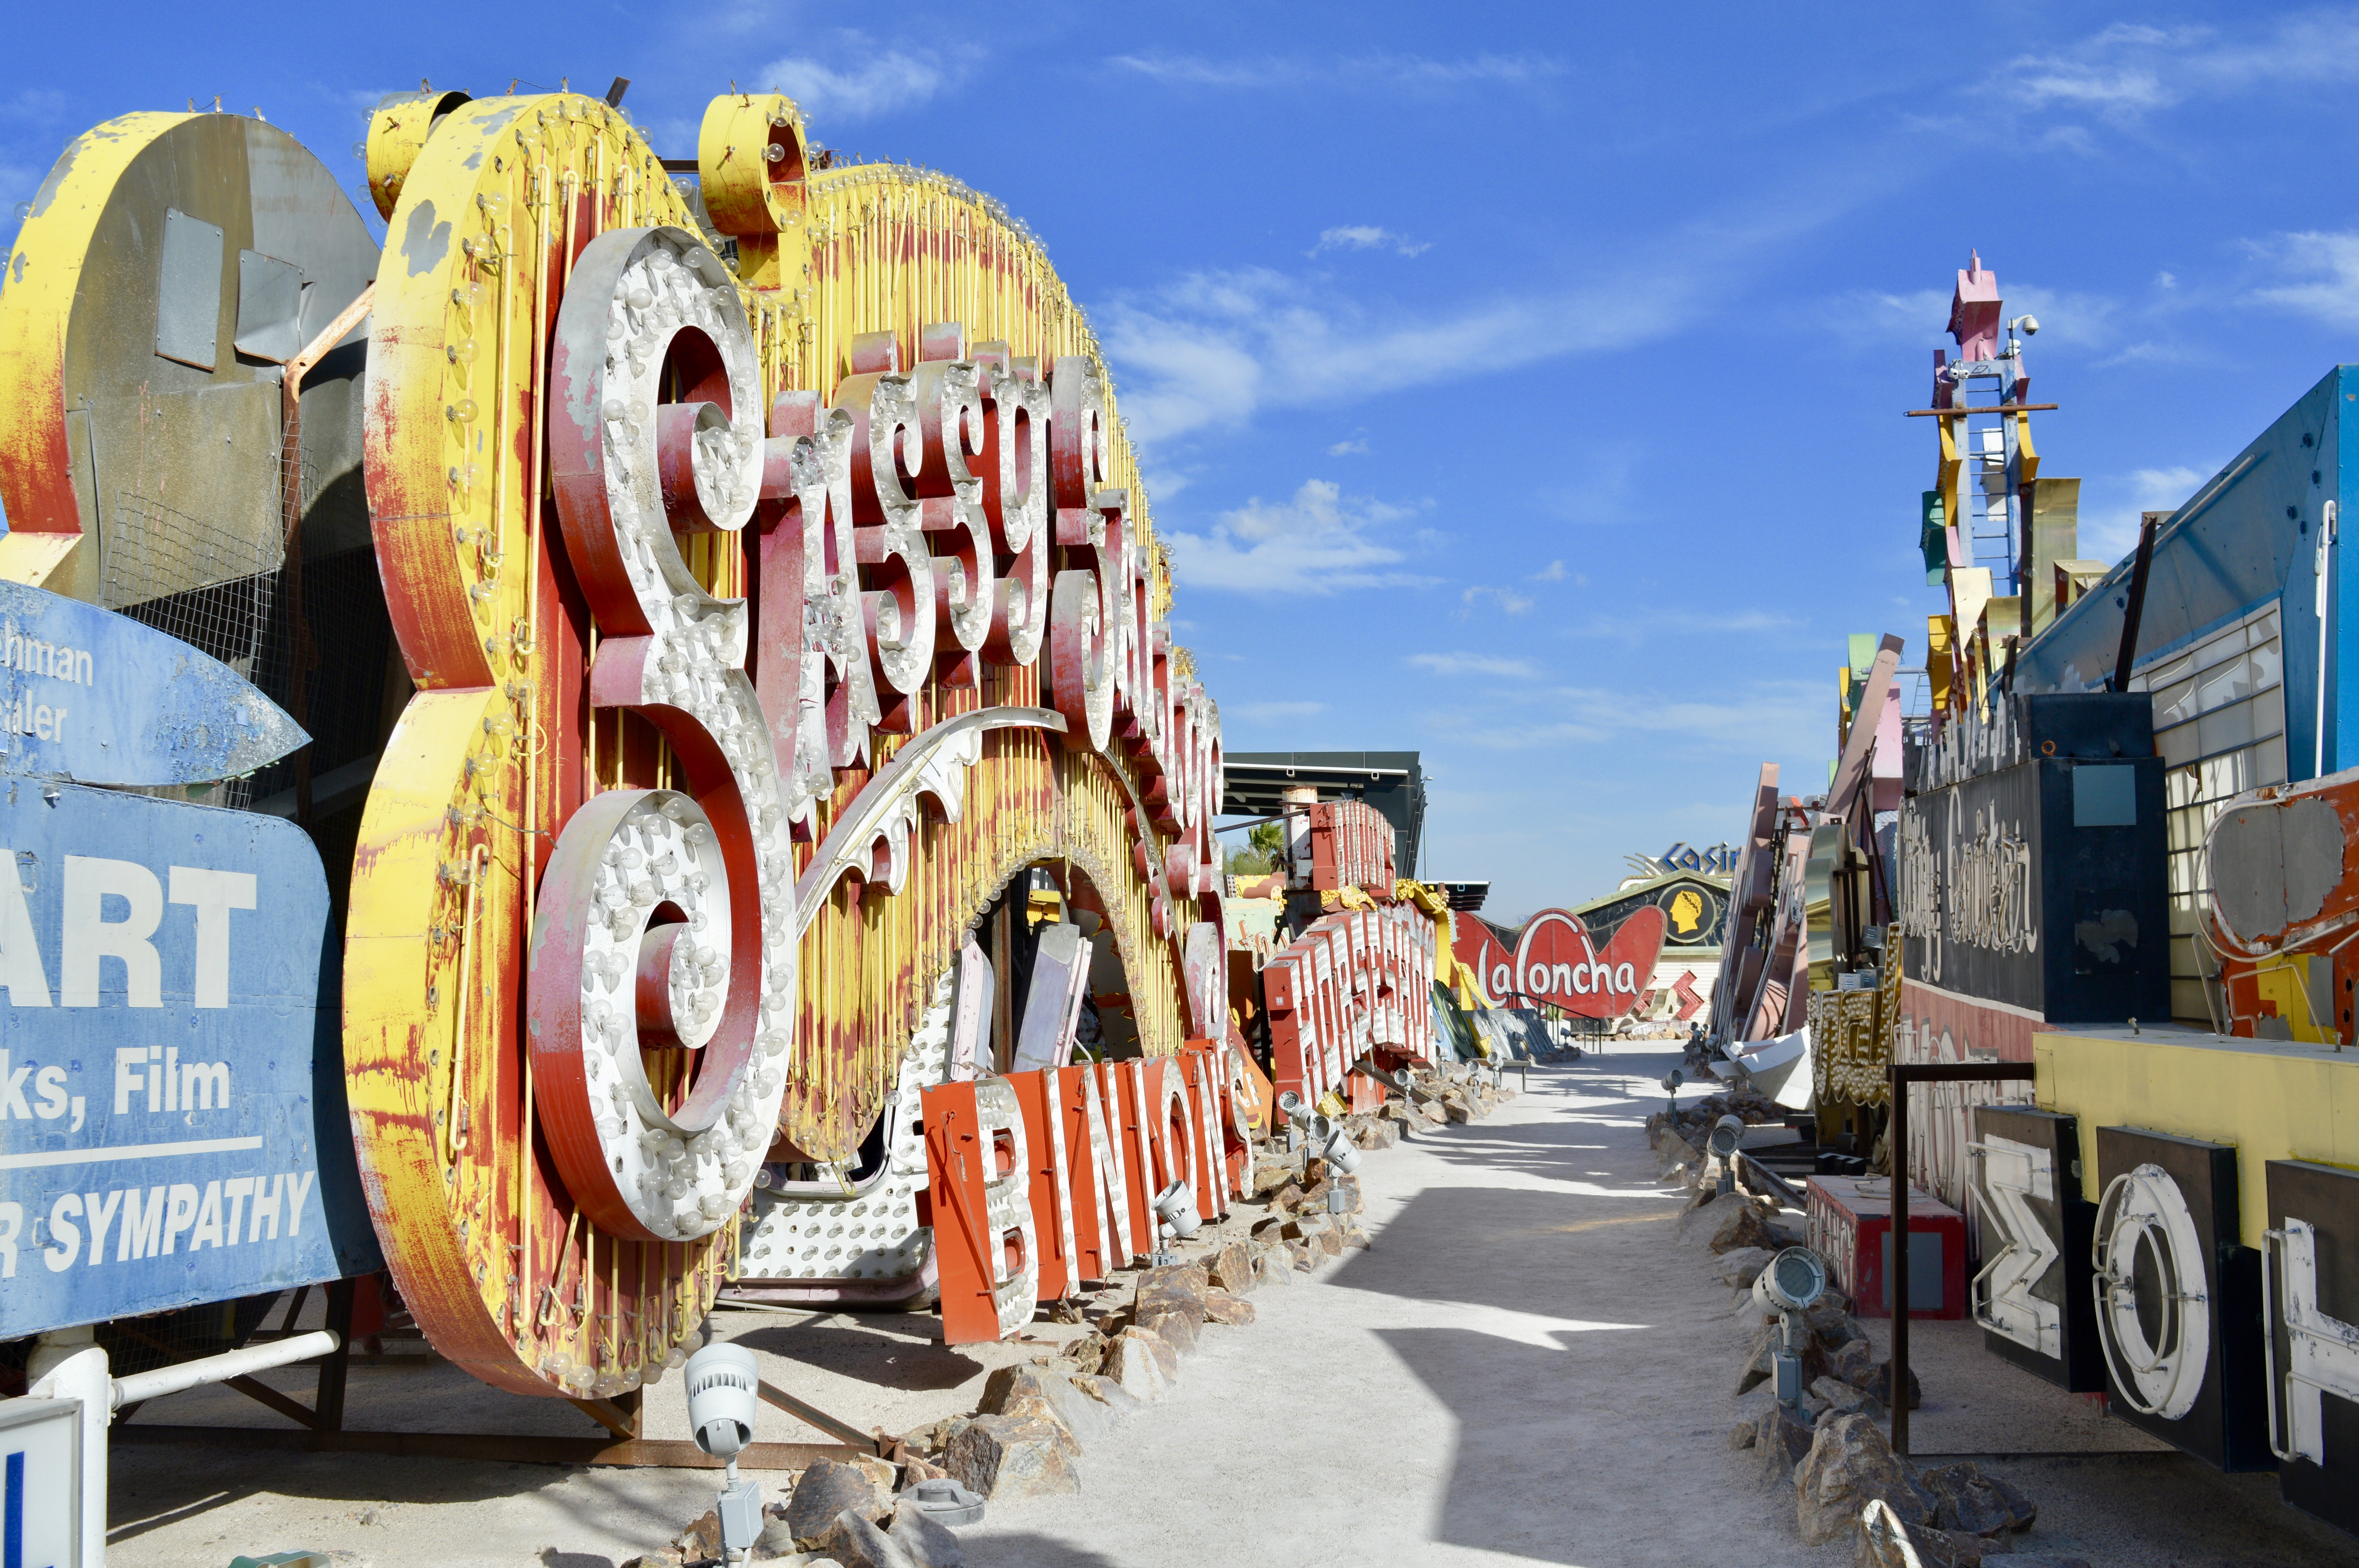 Sassy Sally's | The Neon Boneyard Museum | Las Vegas | What should I do in Las Vegas? | Travel tips for Las Vegas Nevada | Travel Blog | Elle Blonde Luxury Lifestyle Destination Blog